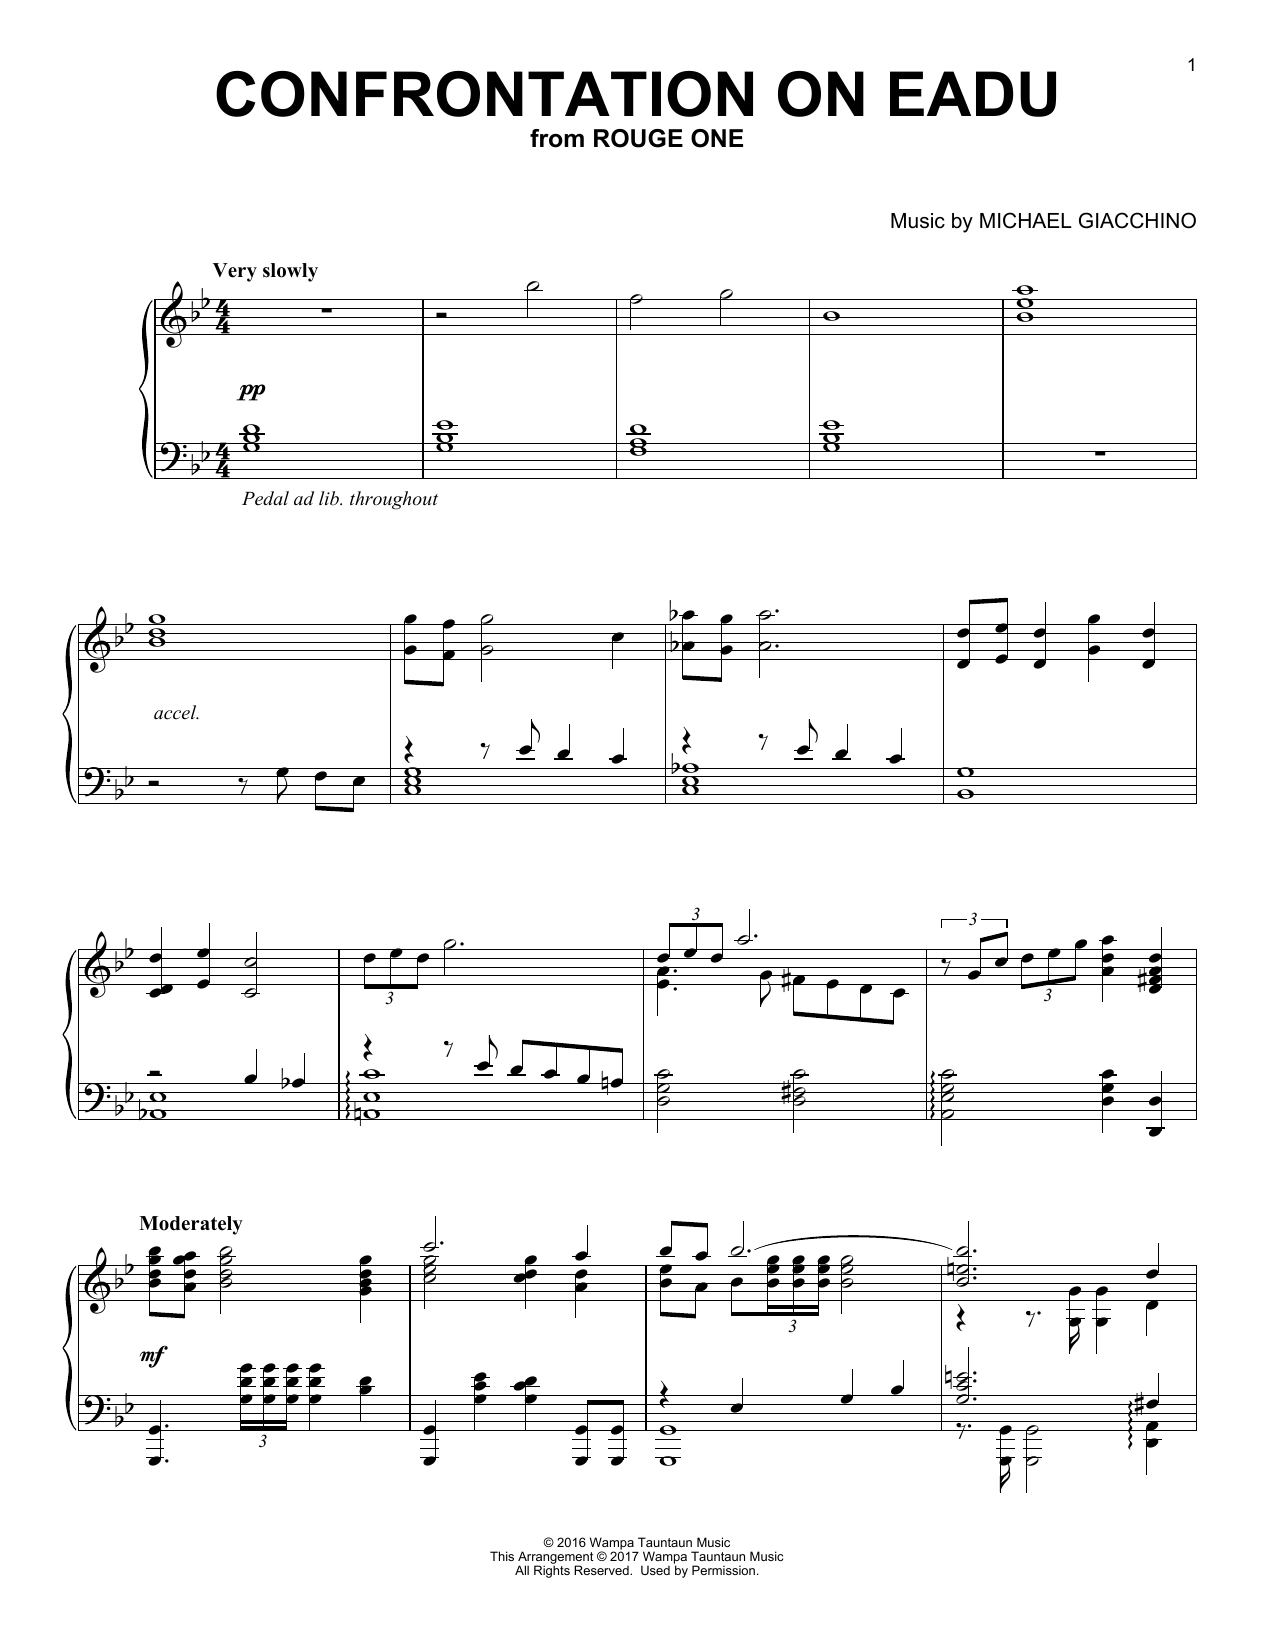 Michael Giacchino Confrontation On Eadu sheet music notes and chords. Download Printable PDF.